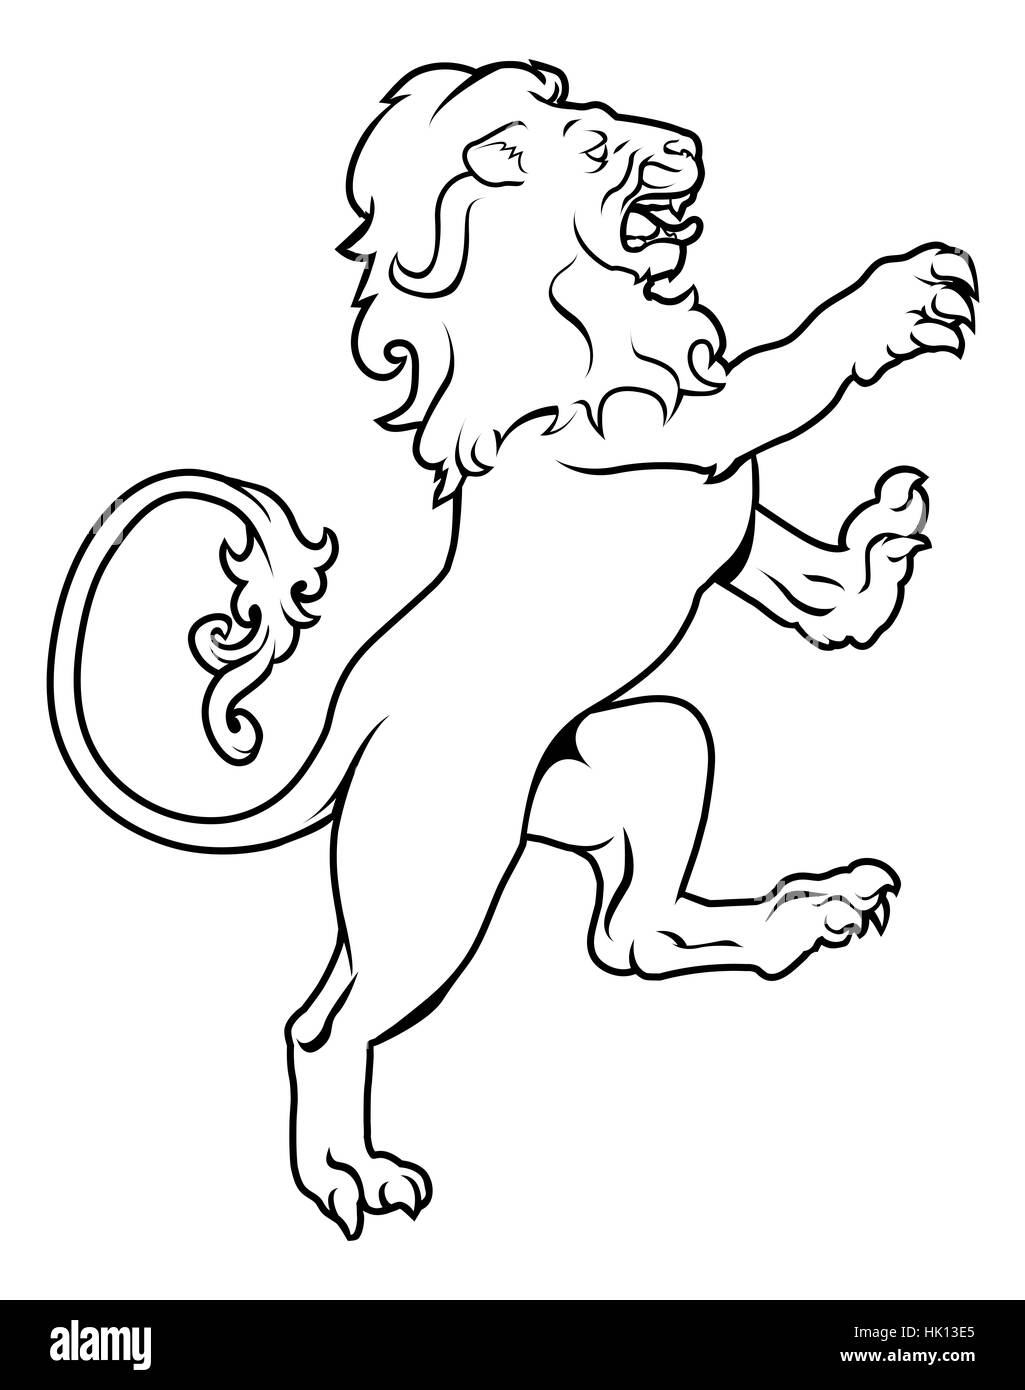 Illustration of a heraldic lion on its hind legs, like those found on a crest emblem or coat of arms on a shield - Stock Image